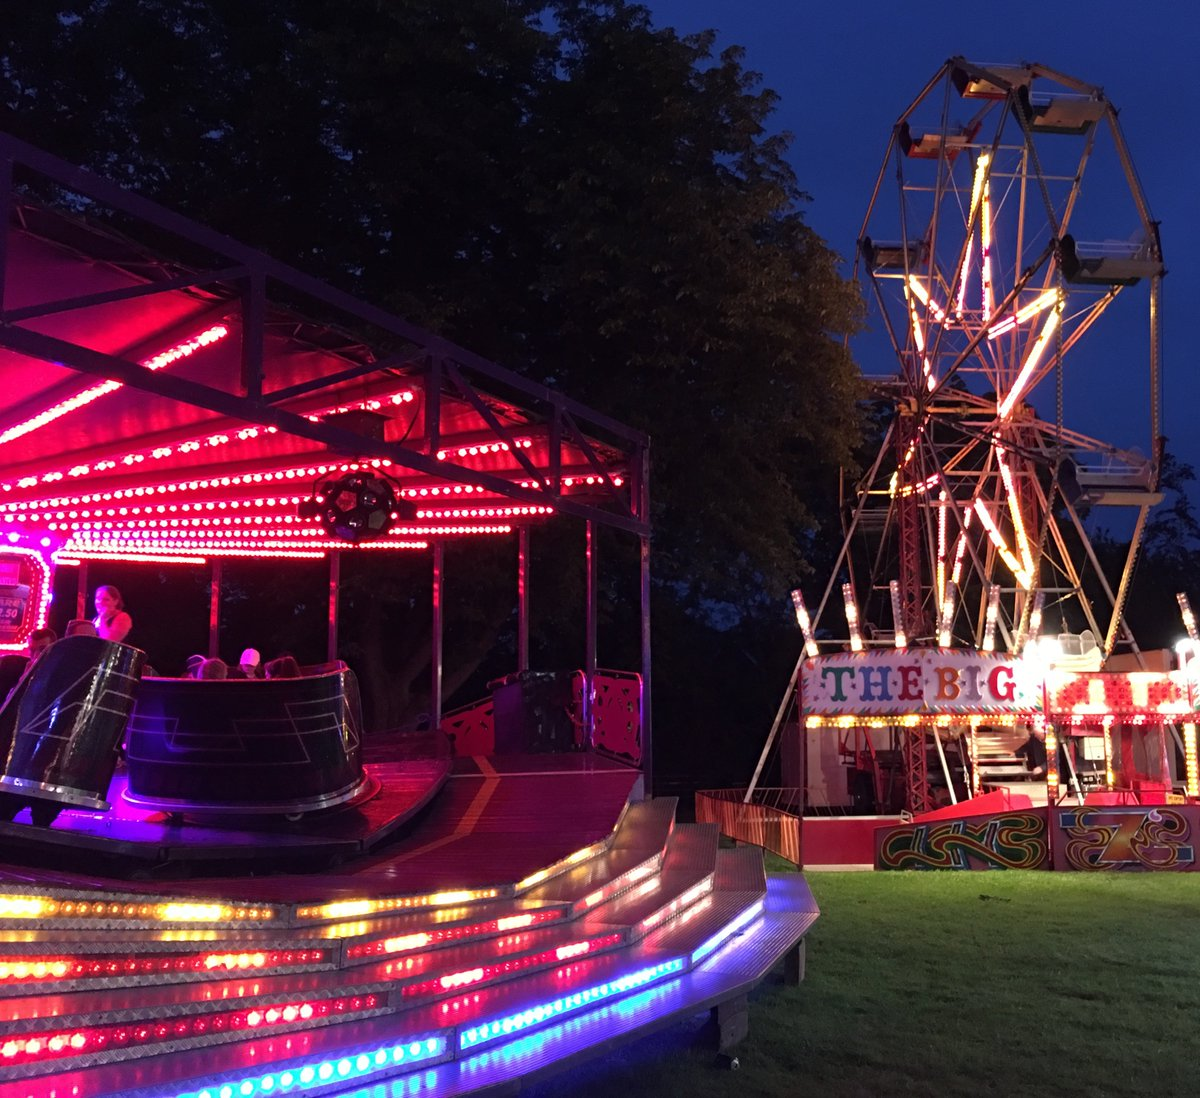 My Tenterden on Twitter  Opening on Thursday Tenterden Family Fun Fair - Traditional Fairground //t.co/gRxEMynMRi Thurs-Sun Tenterden Recreation ... & My Tenterden on Twitter: